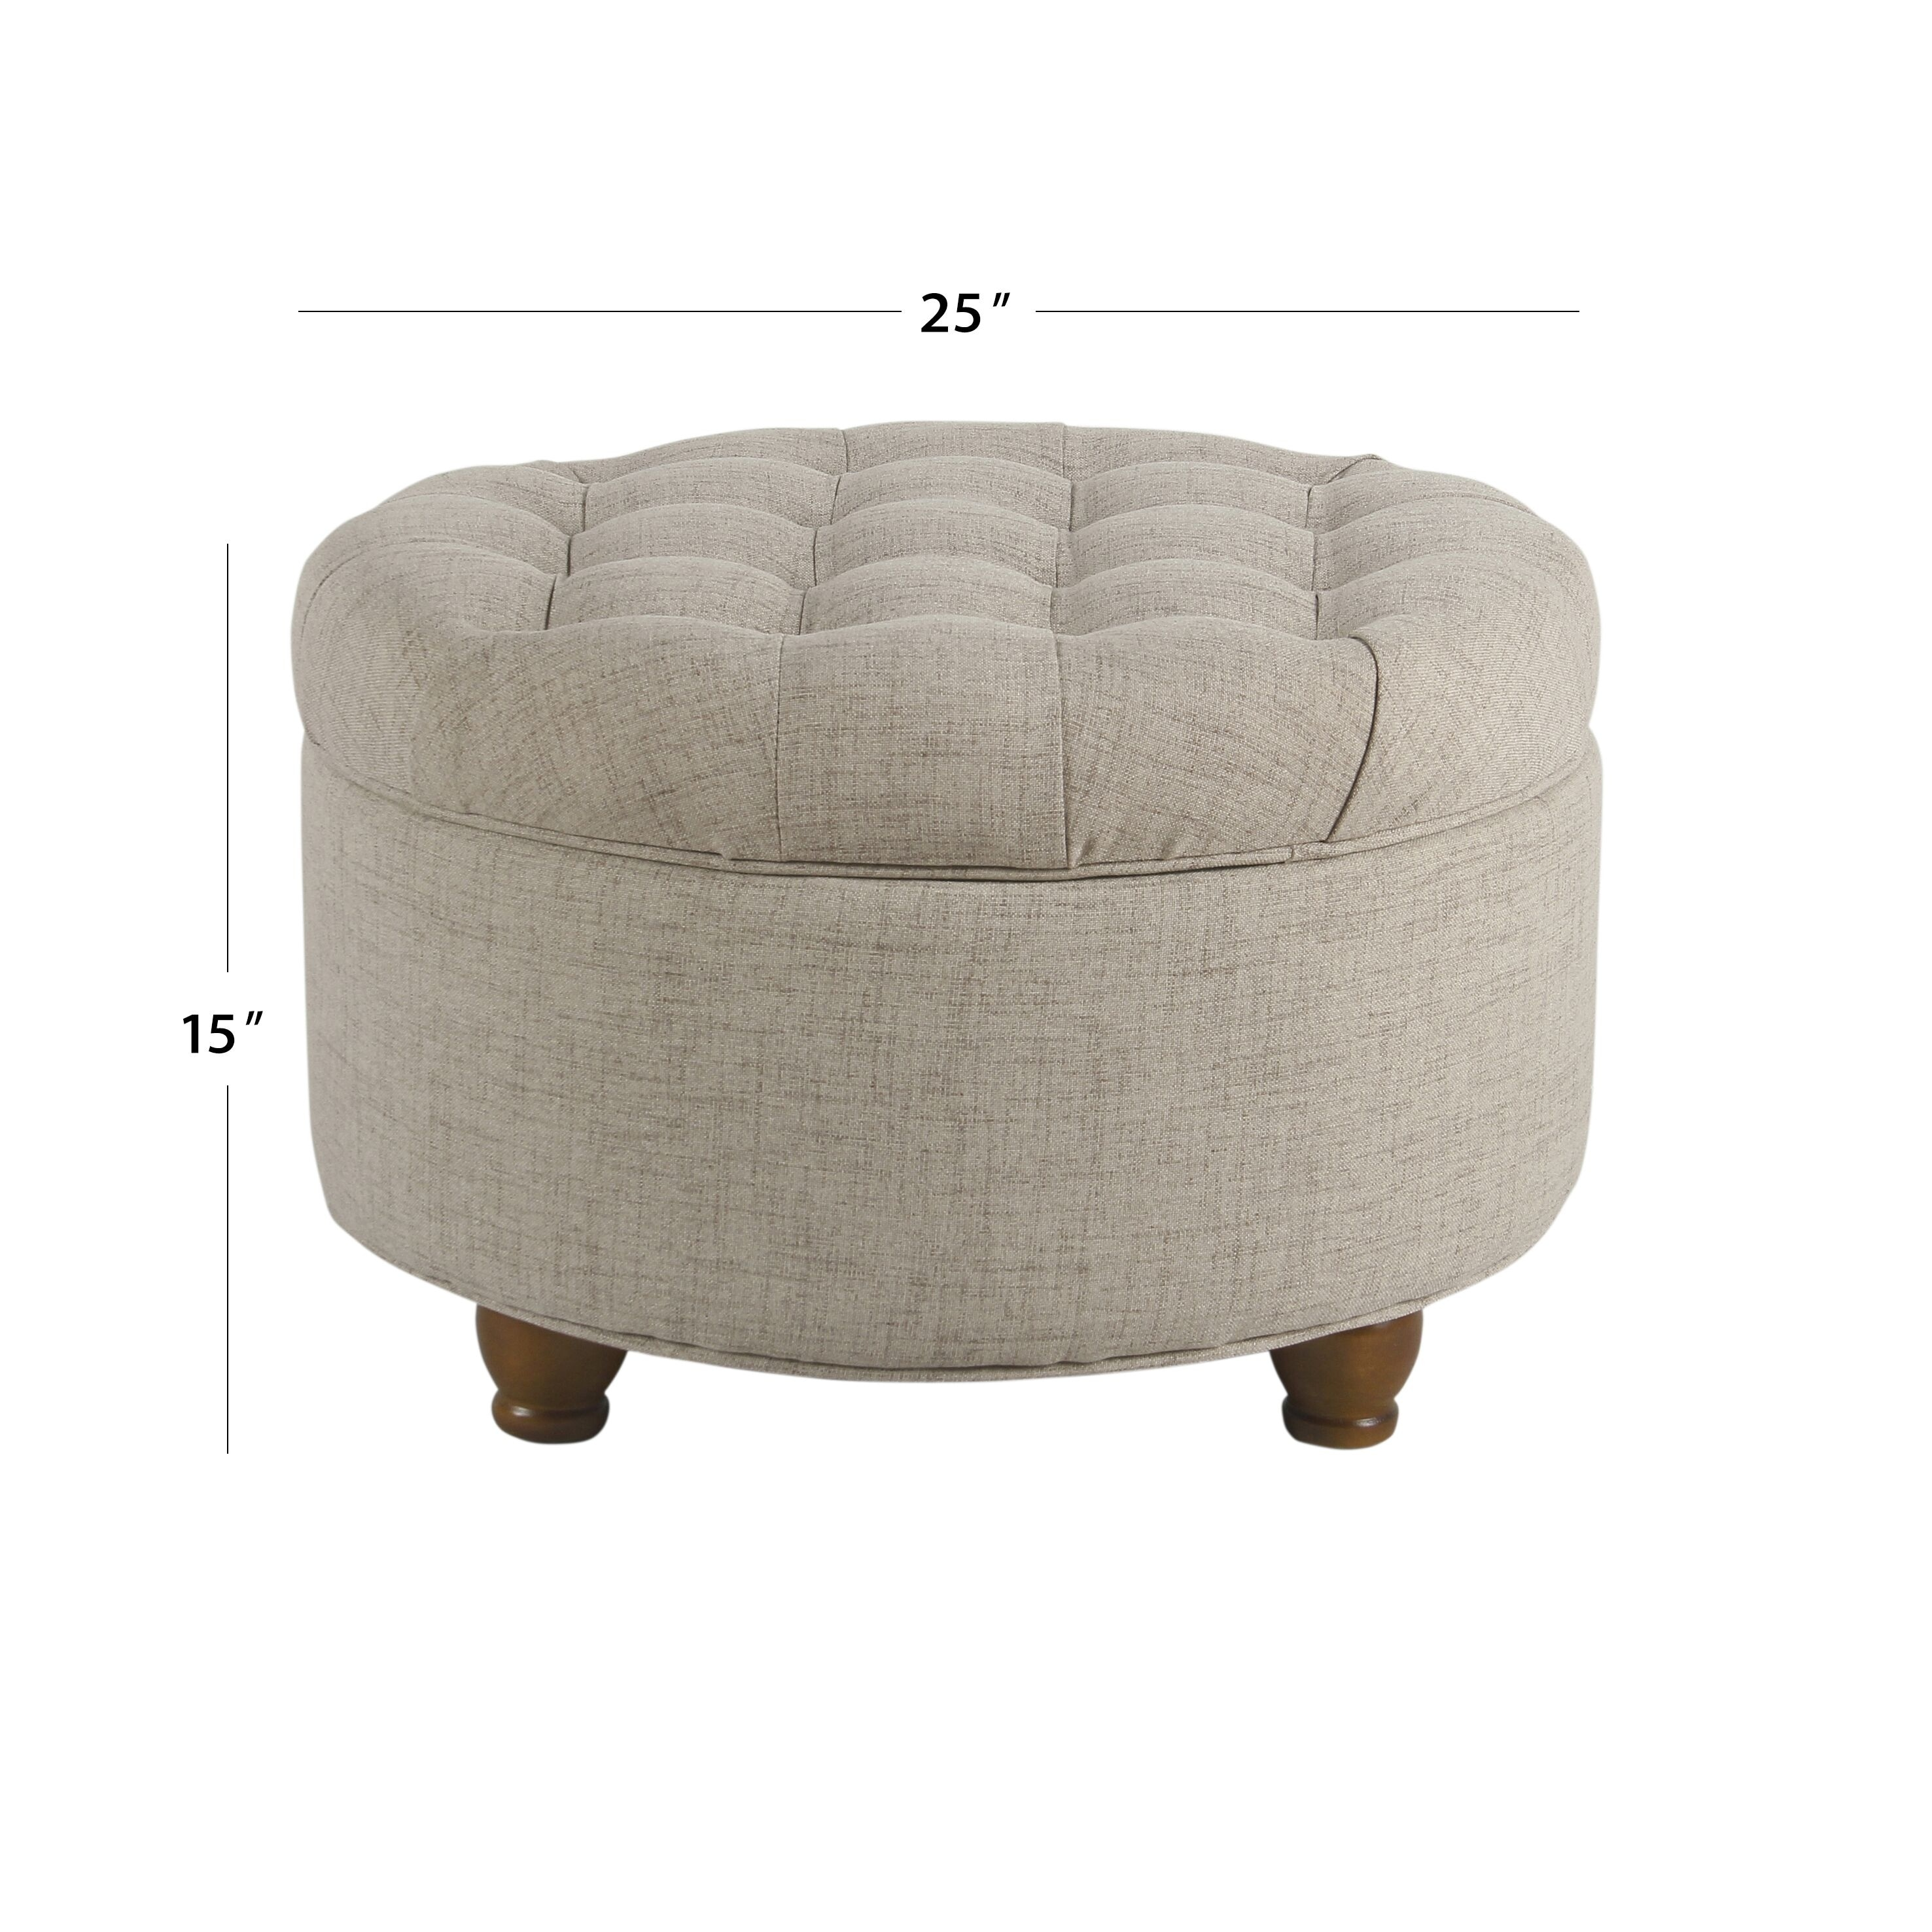 Copper Grove Lamentin Light Tan Tufted Large Round Storage Ottoman On Sale Overstock 21892091